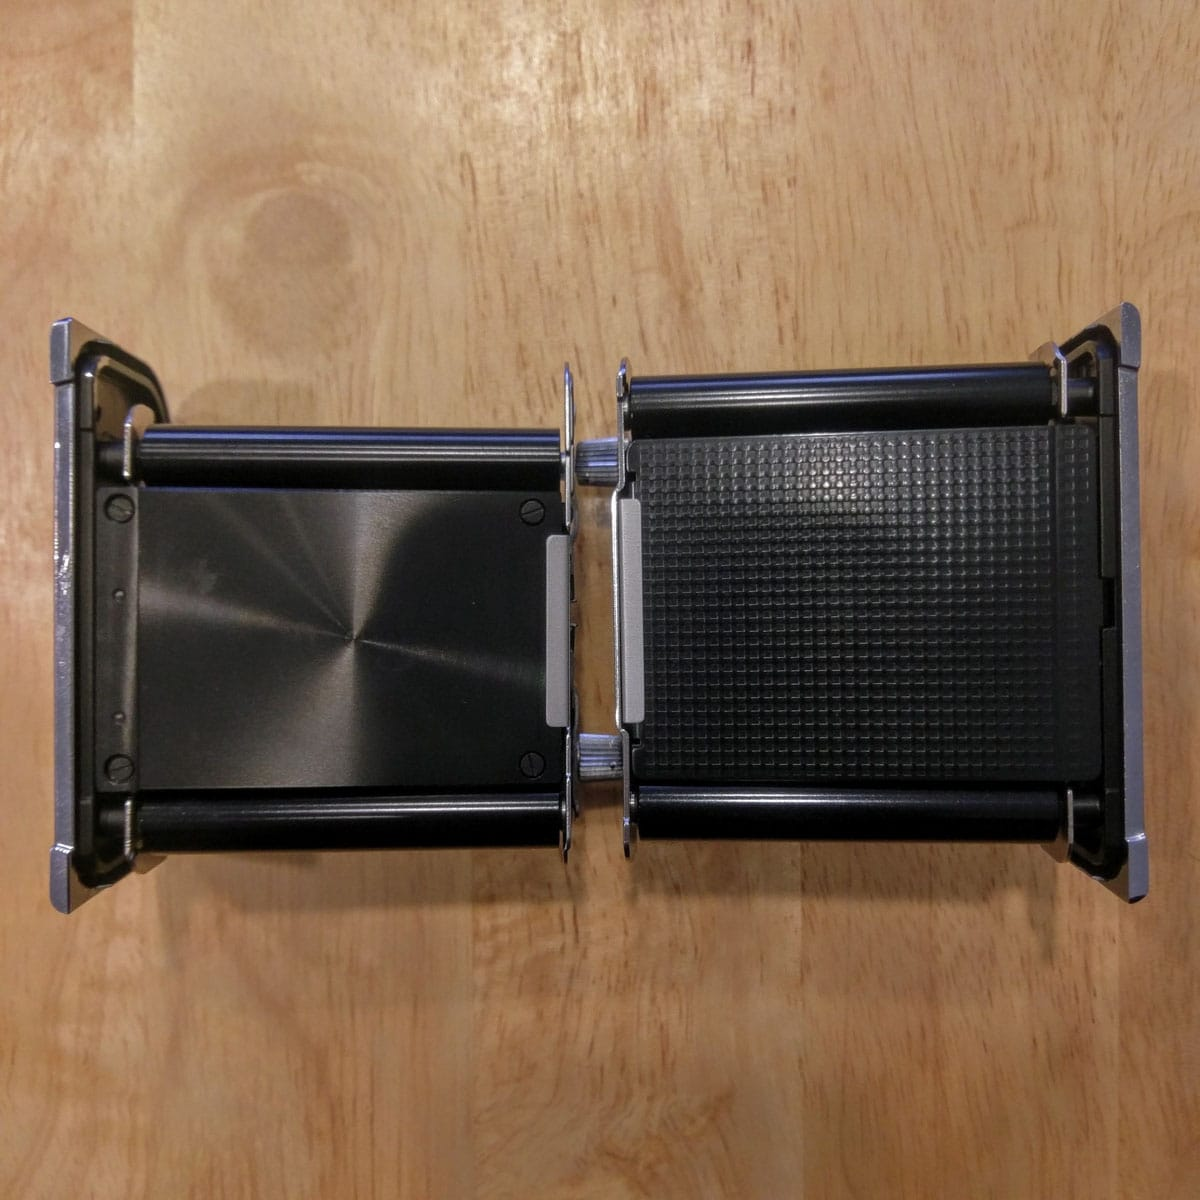 Hasselblad film magazine inserts: Left: 6x4.5 (A16). Right: 6x6 (A12).